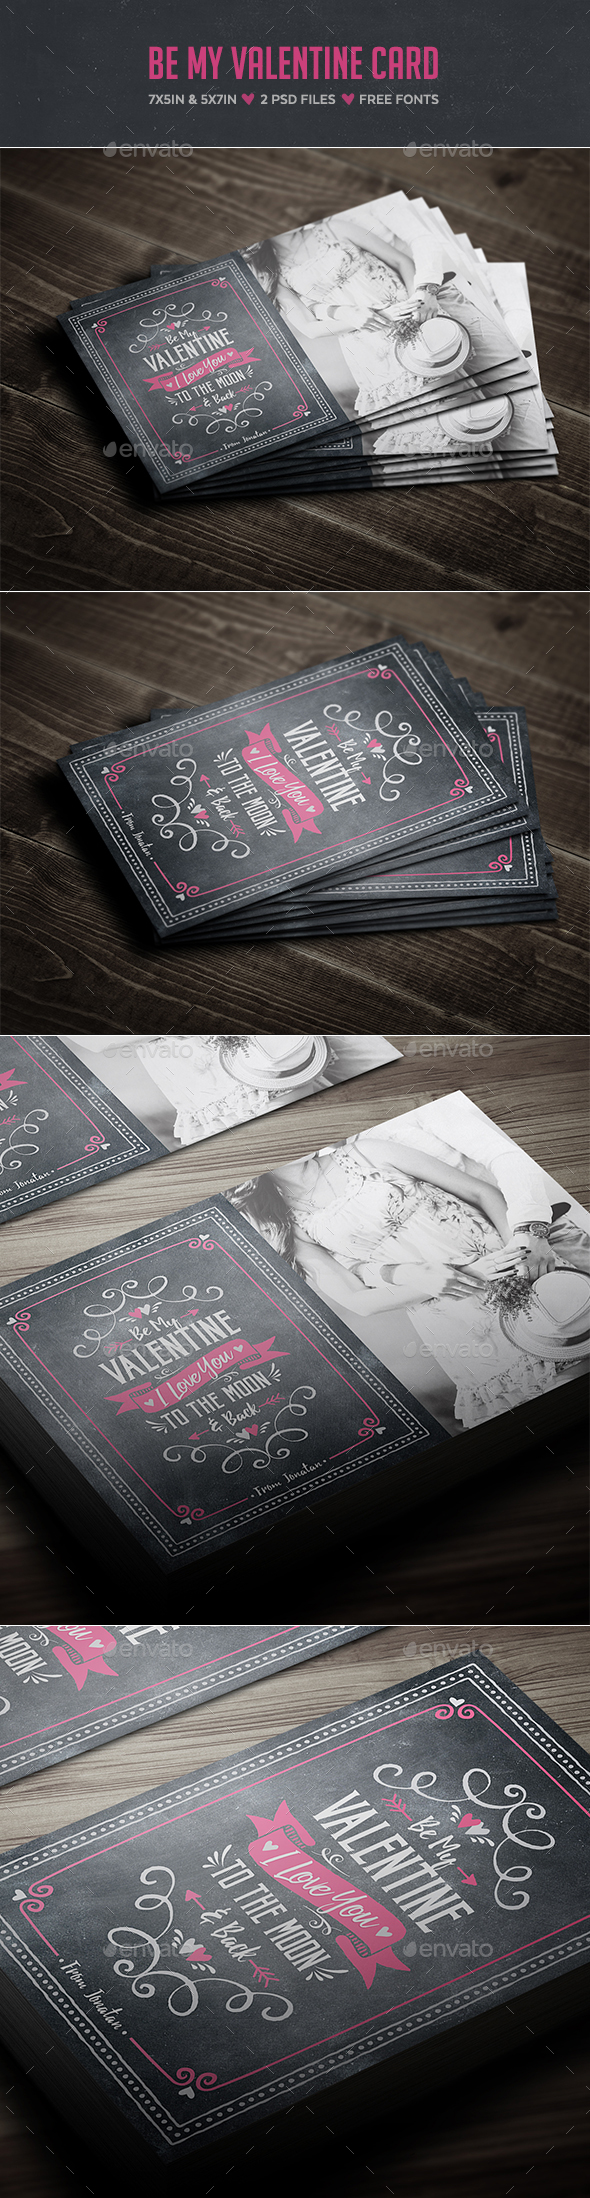 Be My Valentine Card - Holiday Greeting Cards